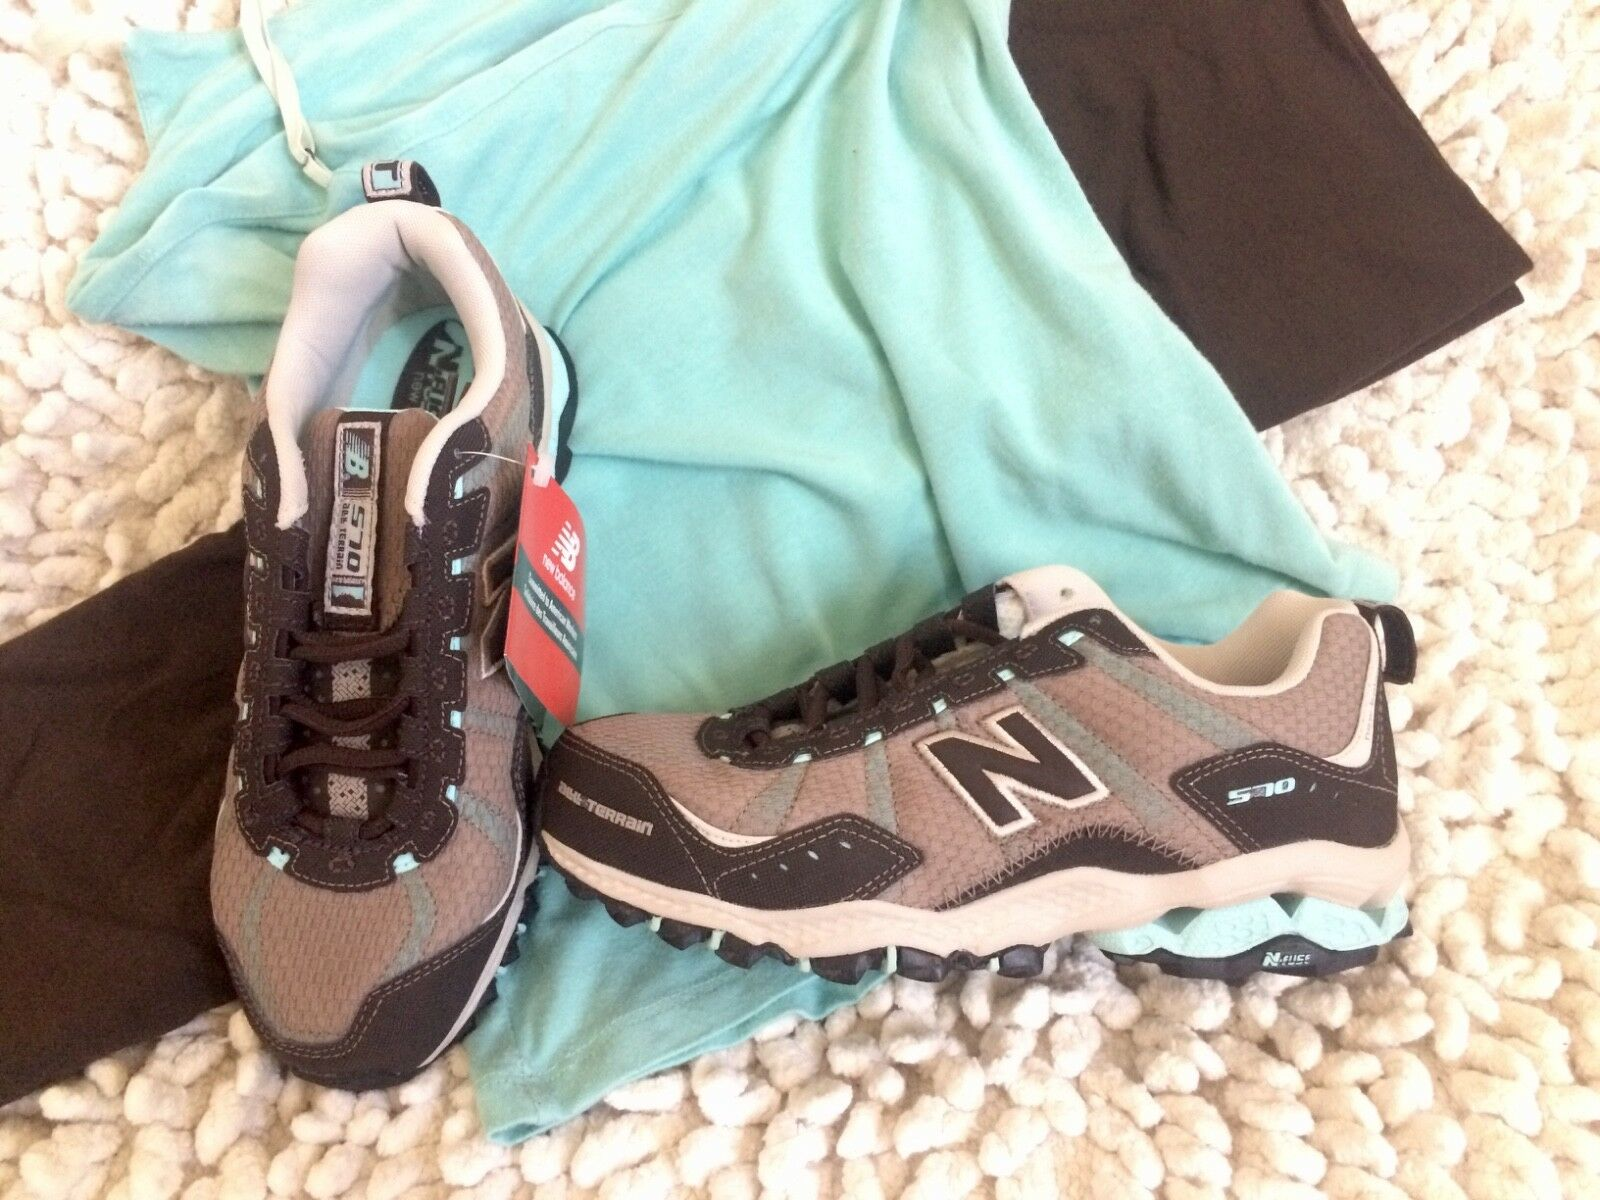 New Balance running hiking shoe -New in box. WT570. Women's Size 6.5